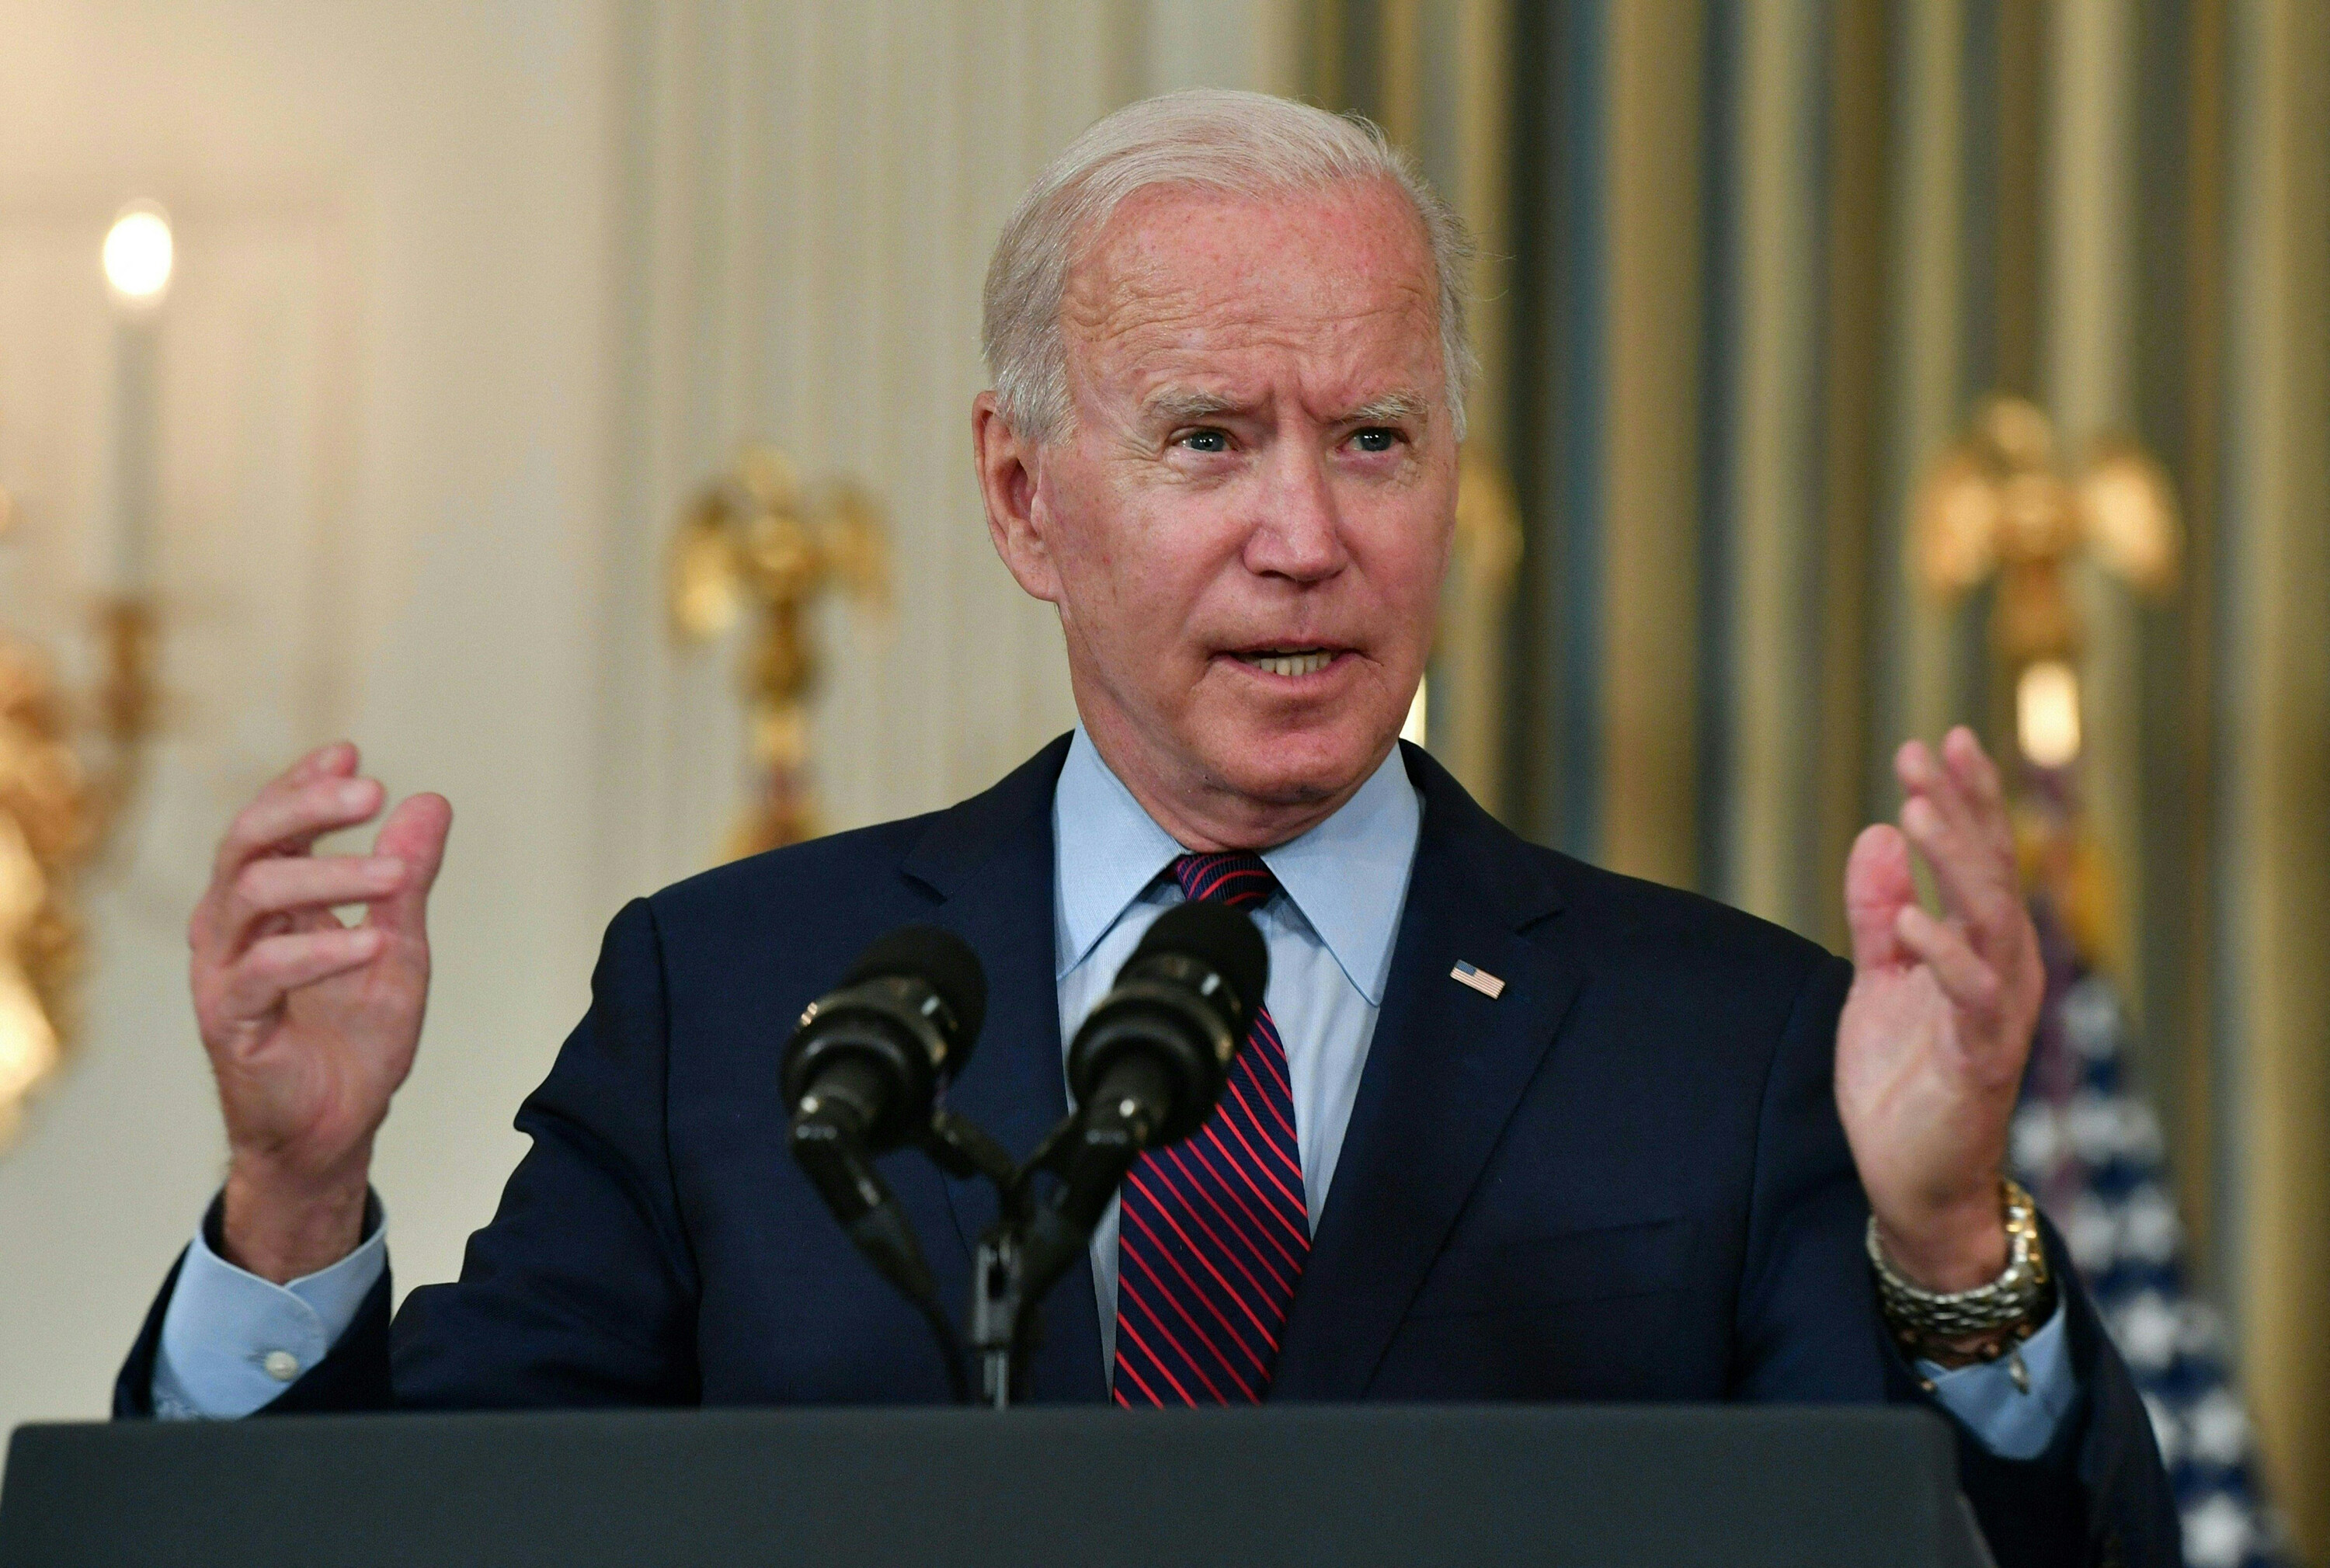 Biden says he's instructed the Justice Department to address unruly passengers on planes